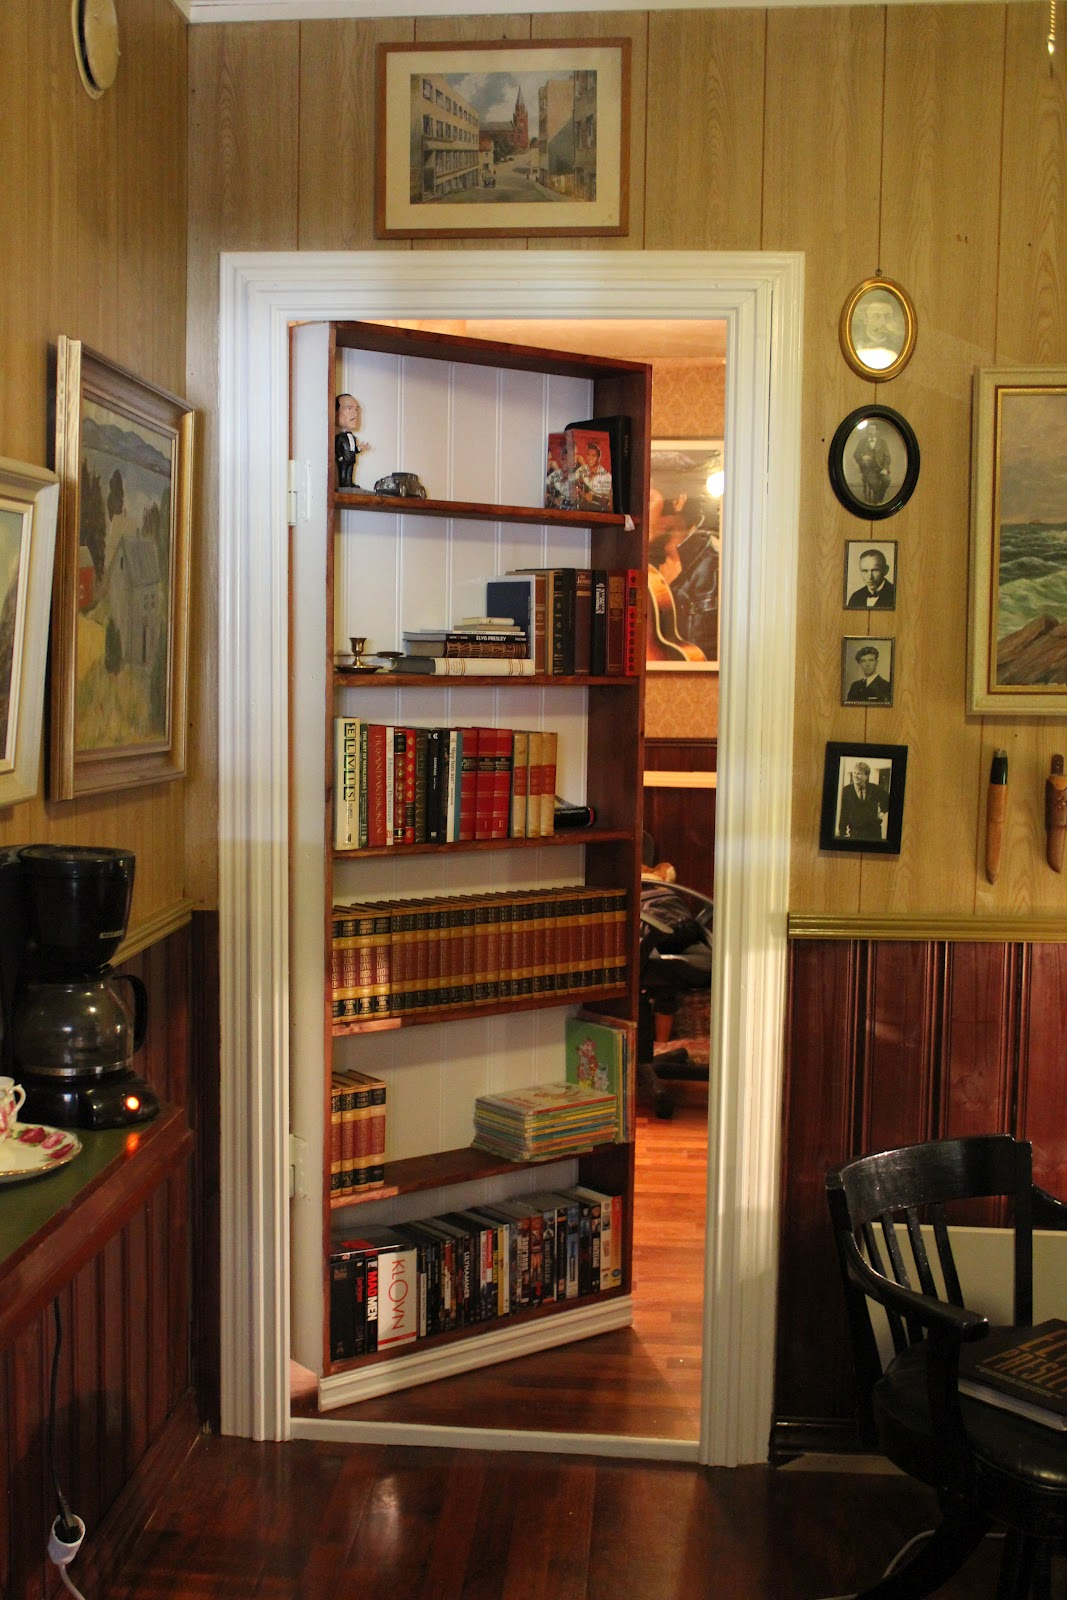 attic remodeling ideas stairs - Secret Room Behind Bookcase Door